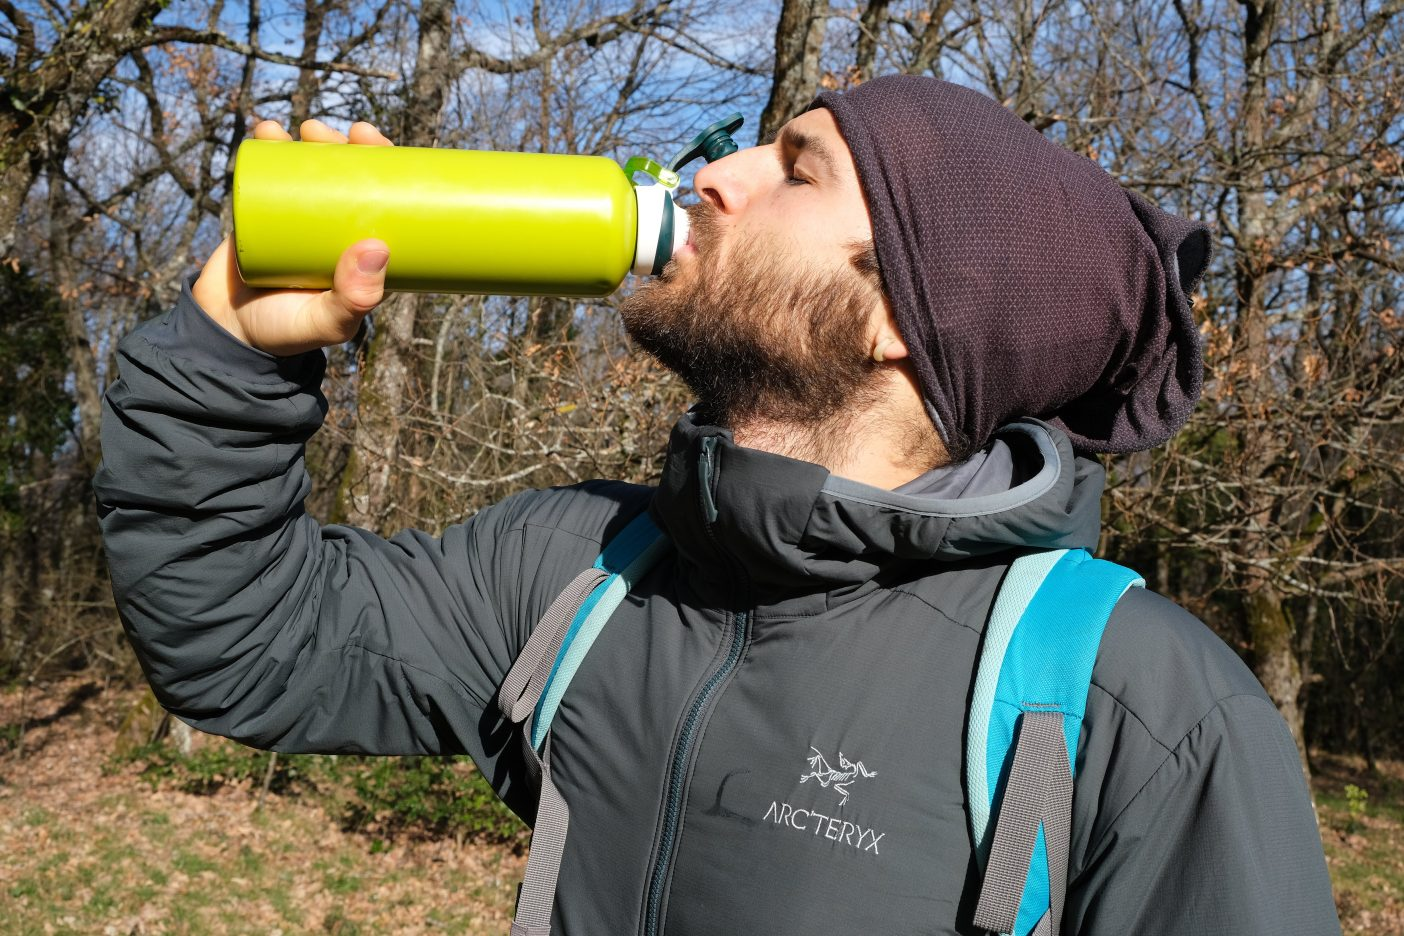 Man drinking from flask in Arc'teryx insulated hoody